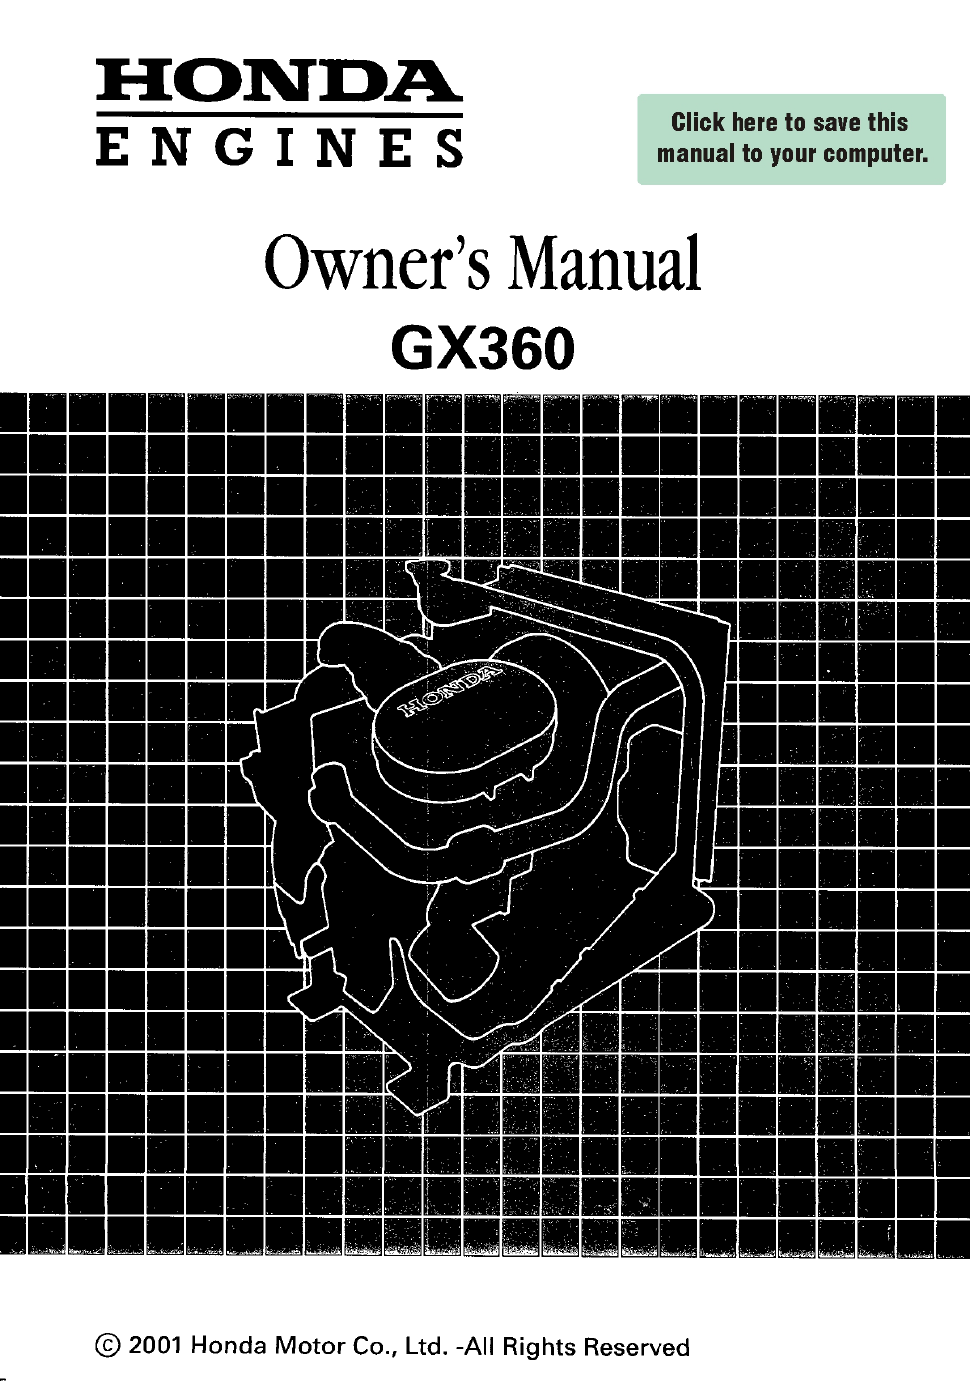 honda gx360 owner s manual free pdf download 68 pages rh manualagent com honda gx360 workshop manual